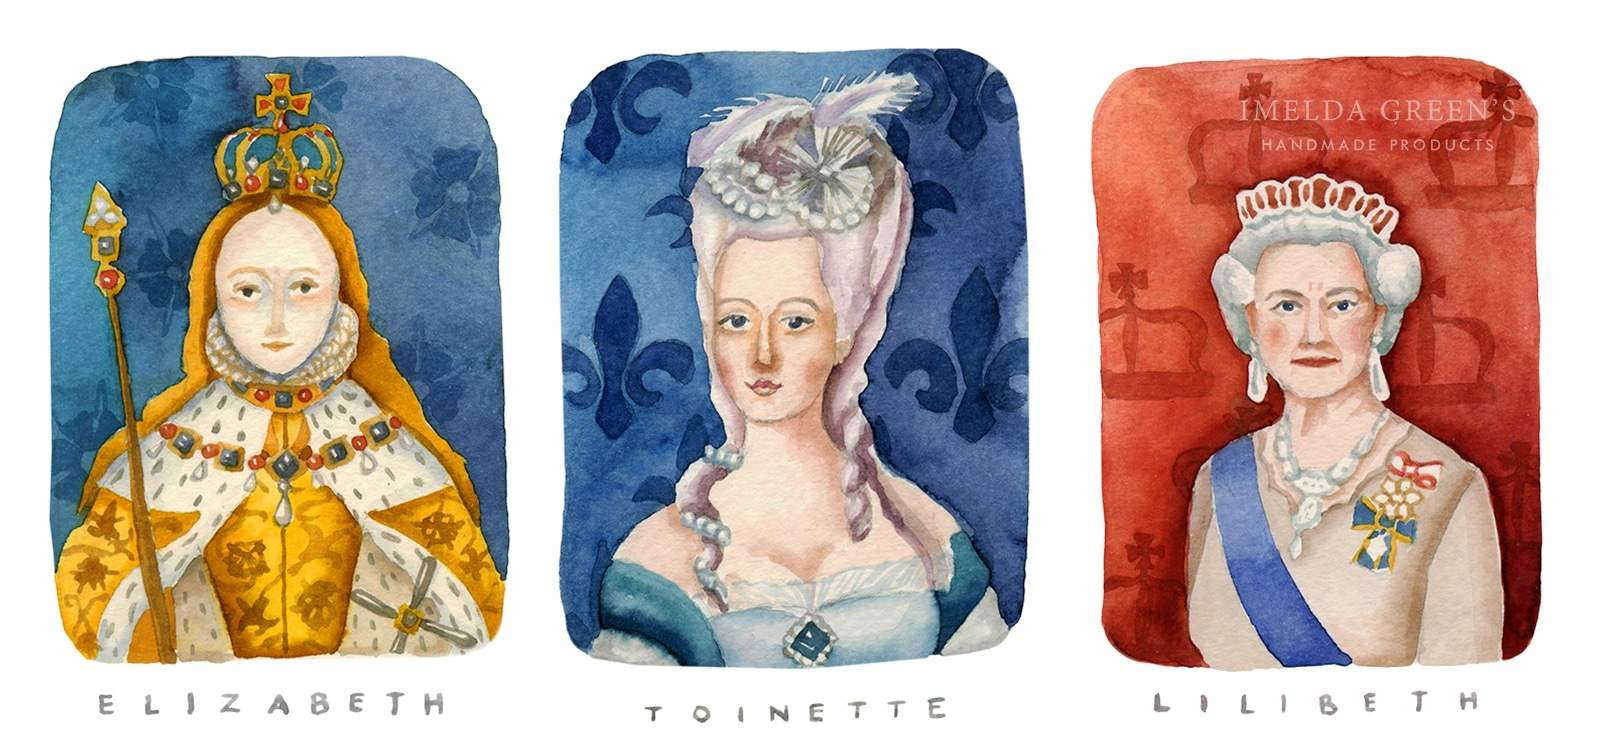 Watercolour portraits | 3 inspirational queens for women's day